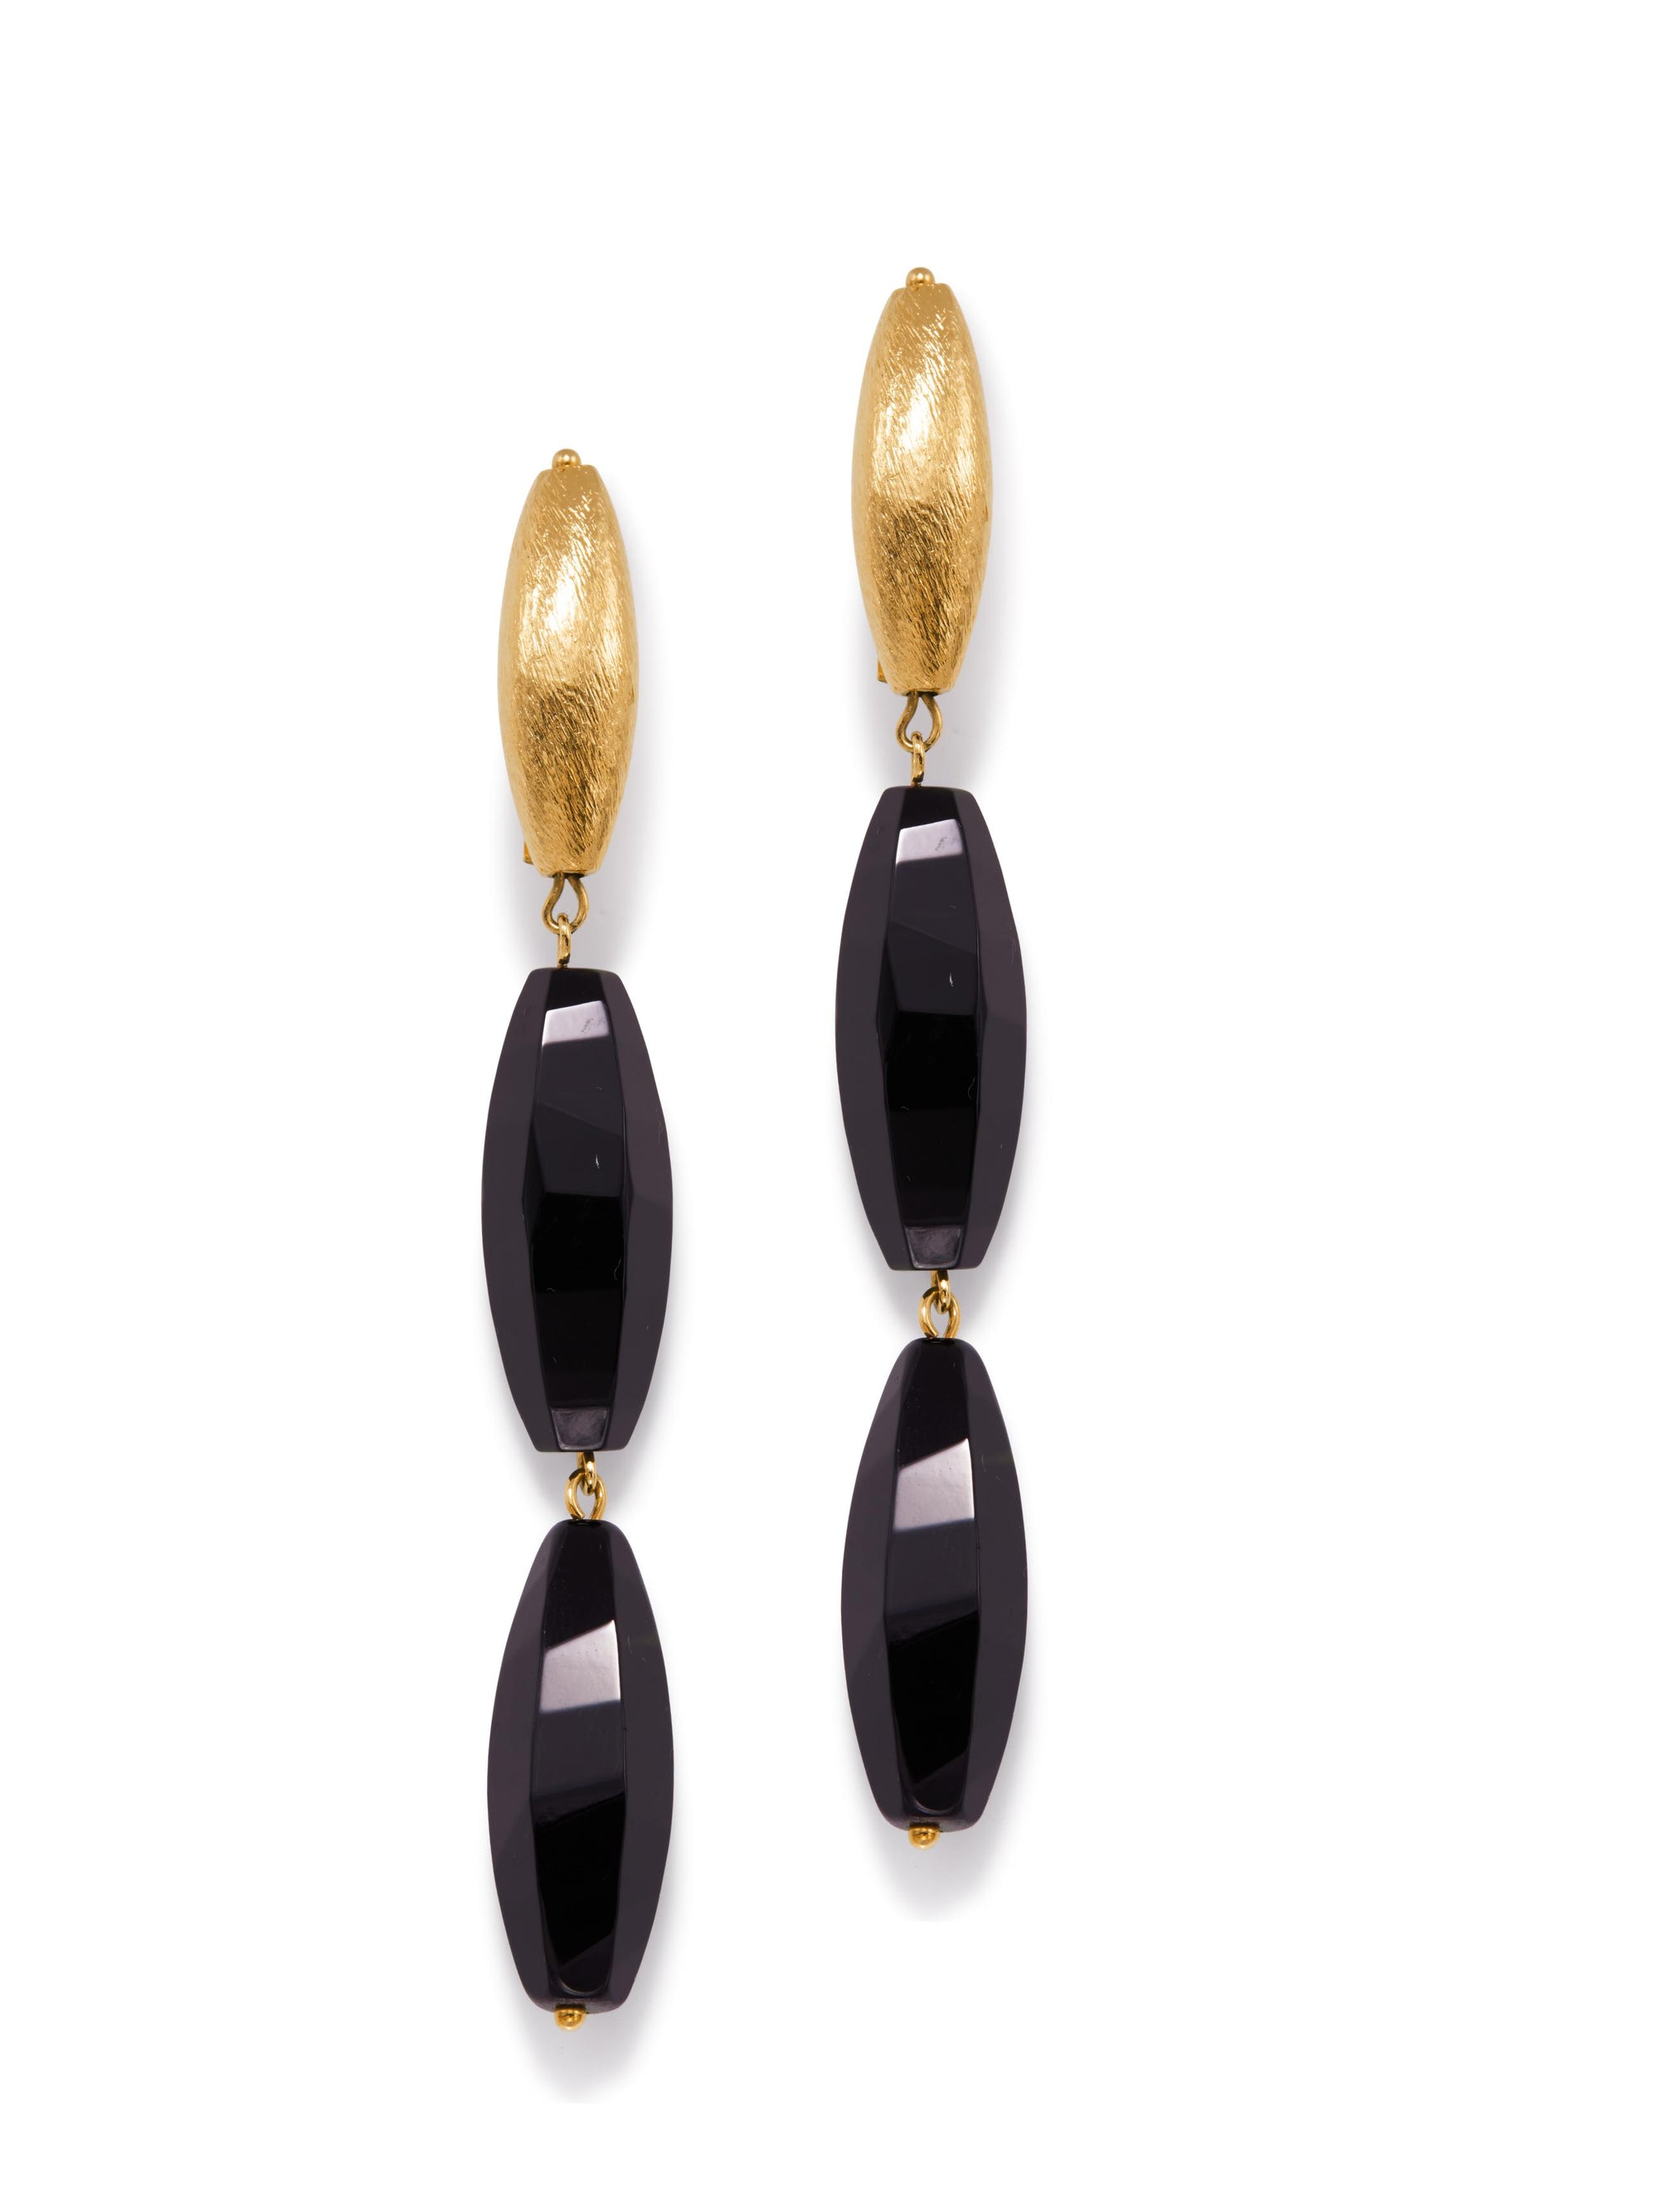 Zeppelin Gold Isla Onyx Post Earrings-Earrings-JAREDJAMIN Jewelry Online-Gold-JARED JAMIN